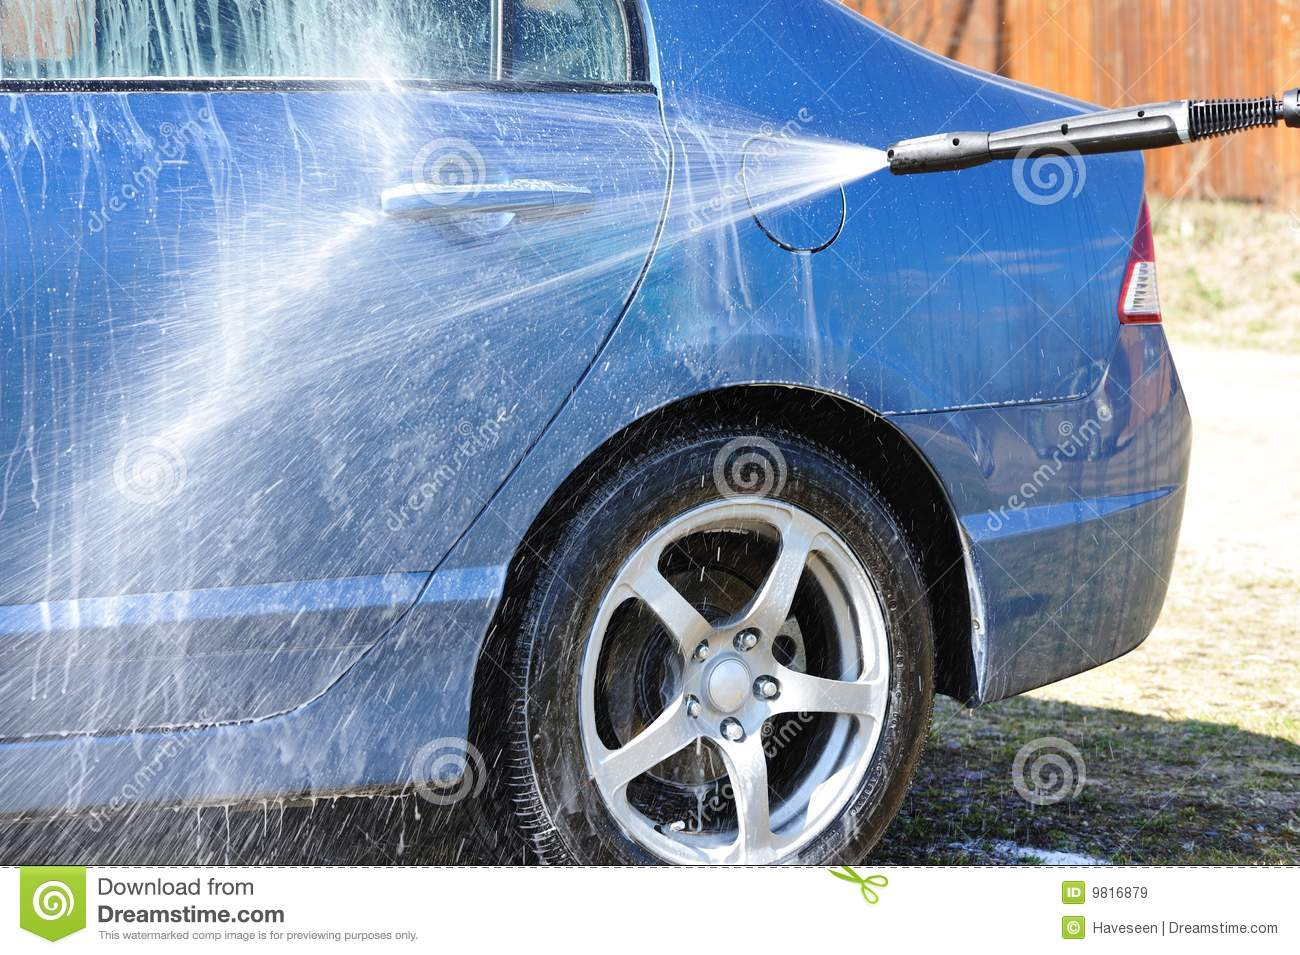 Spray Car Wash >> Car washing stock image. Image of soap, working, water - 9816879